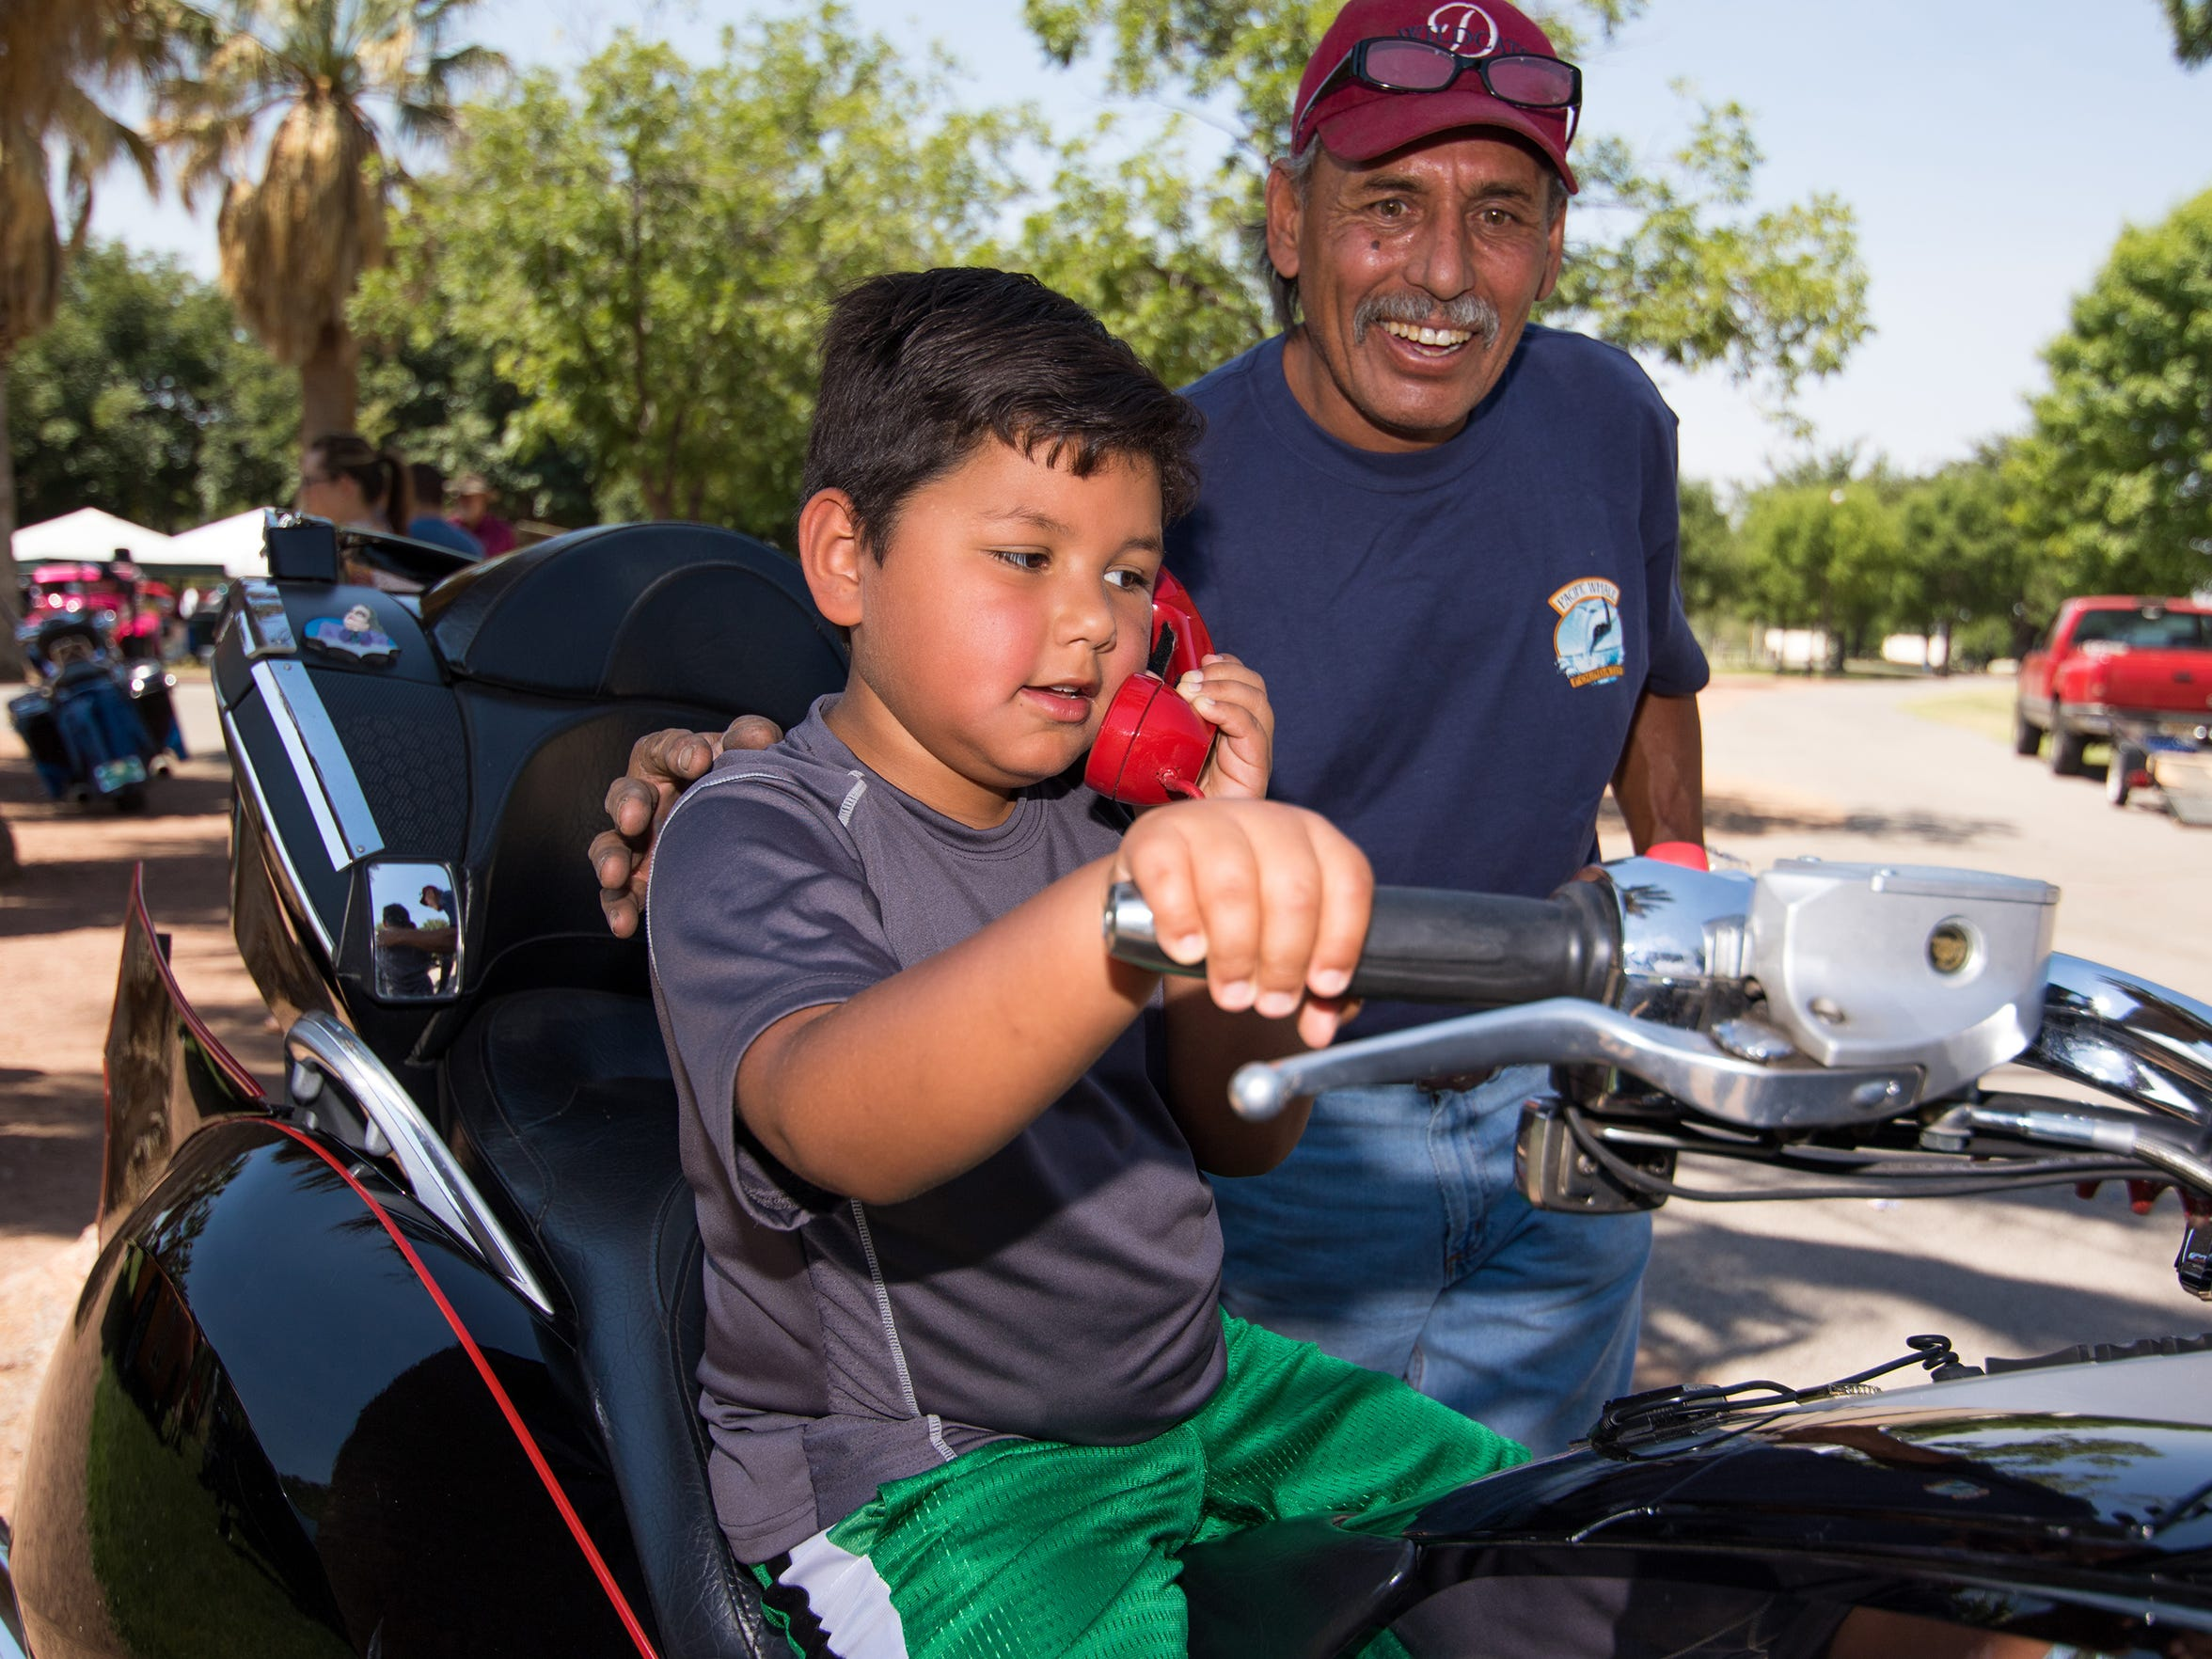 Isidro Calderon reacts as his son Benicio, 8 years old, takes a call on the bat phone while sitting on the Batmobile motorcycle at last year's Kiwanis Kars for Kids Car Show.